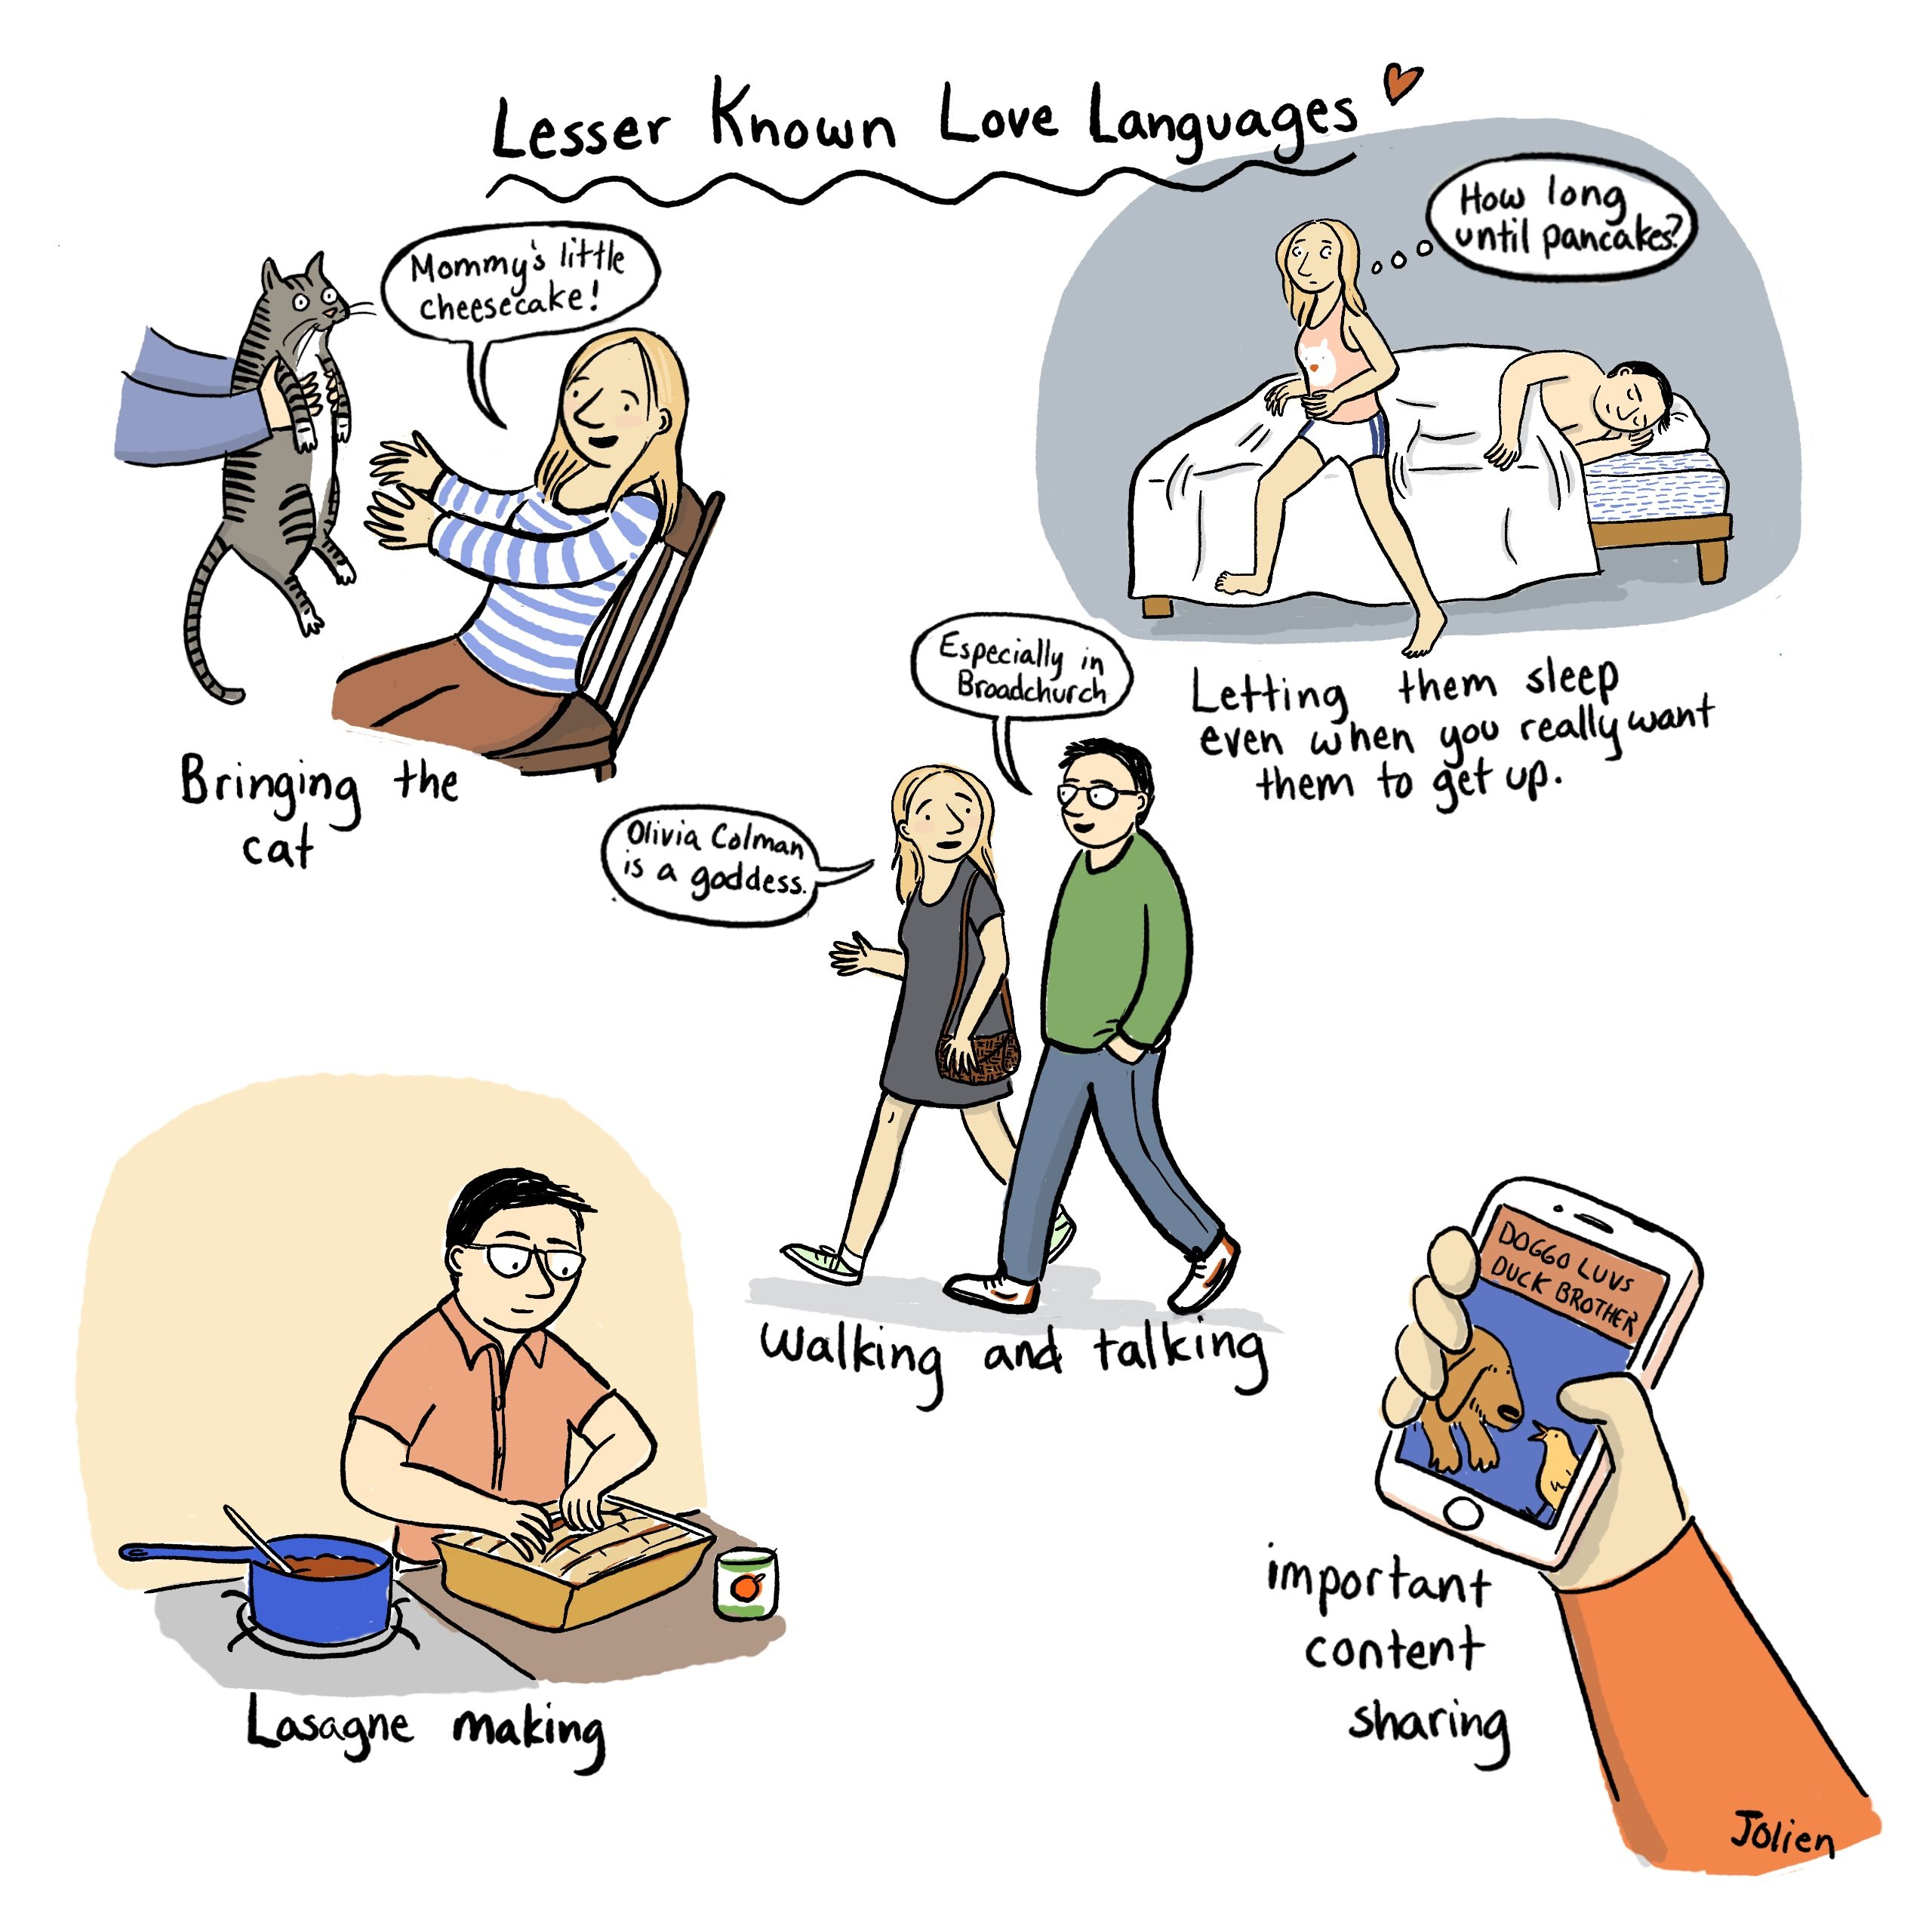 Lesser Known Love Languages comic by Jessica Olien